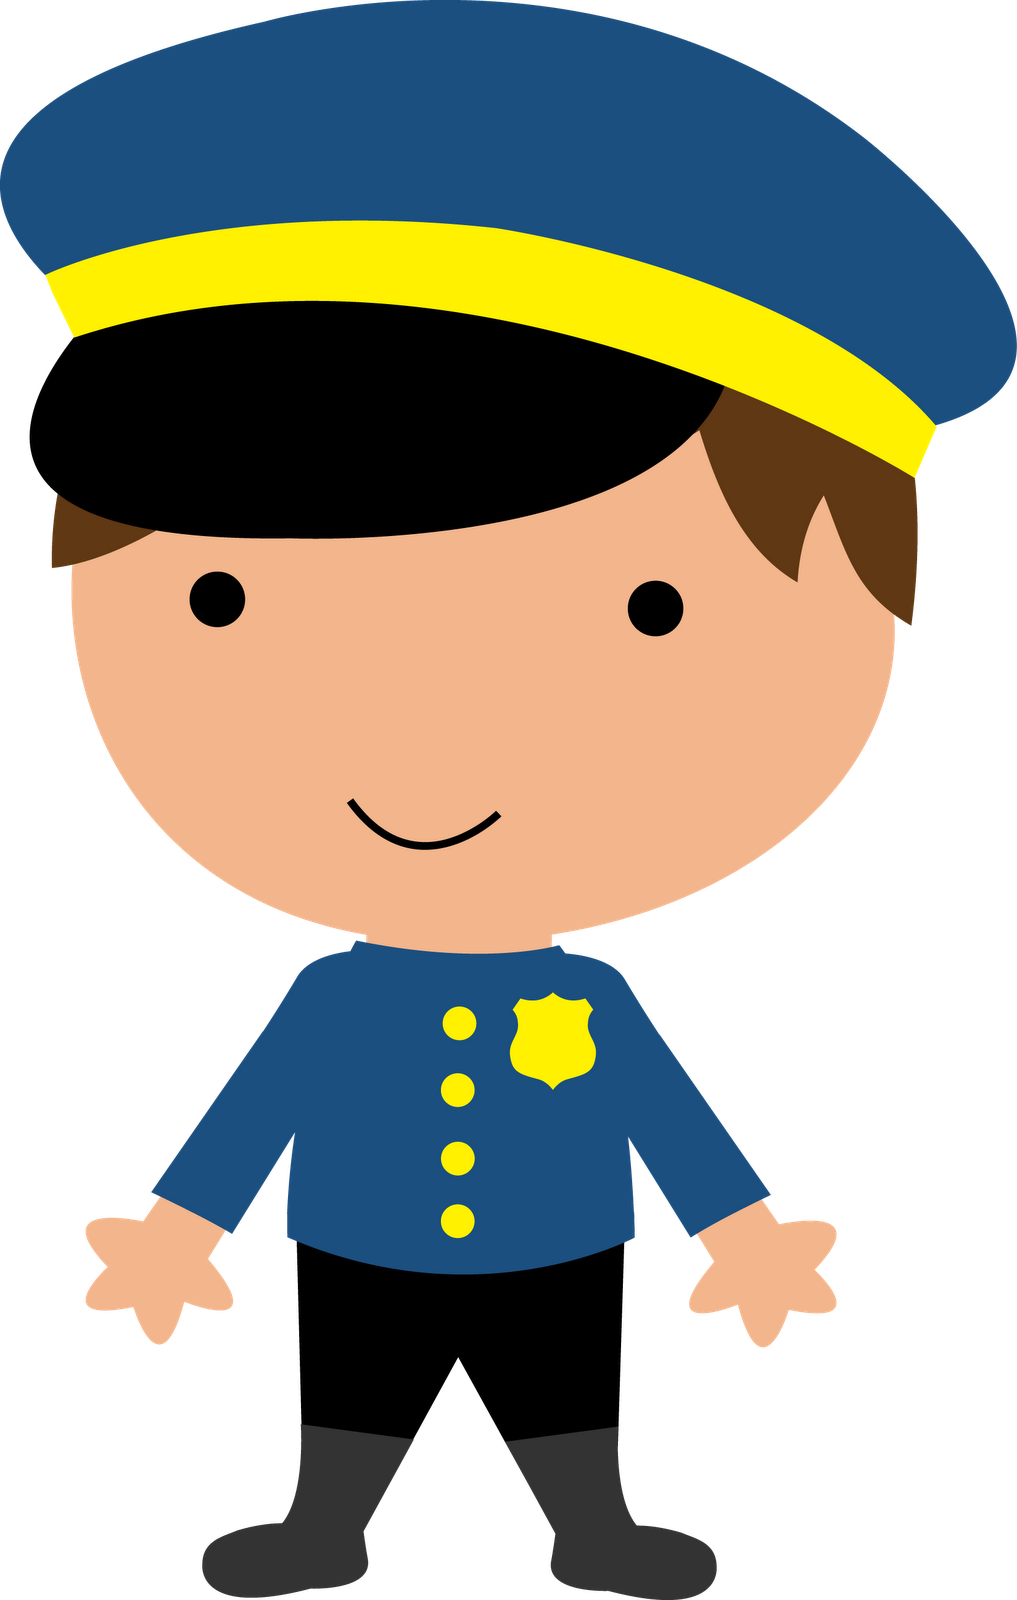 image Policeman theme workers and. Officer clipart community worker